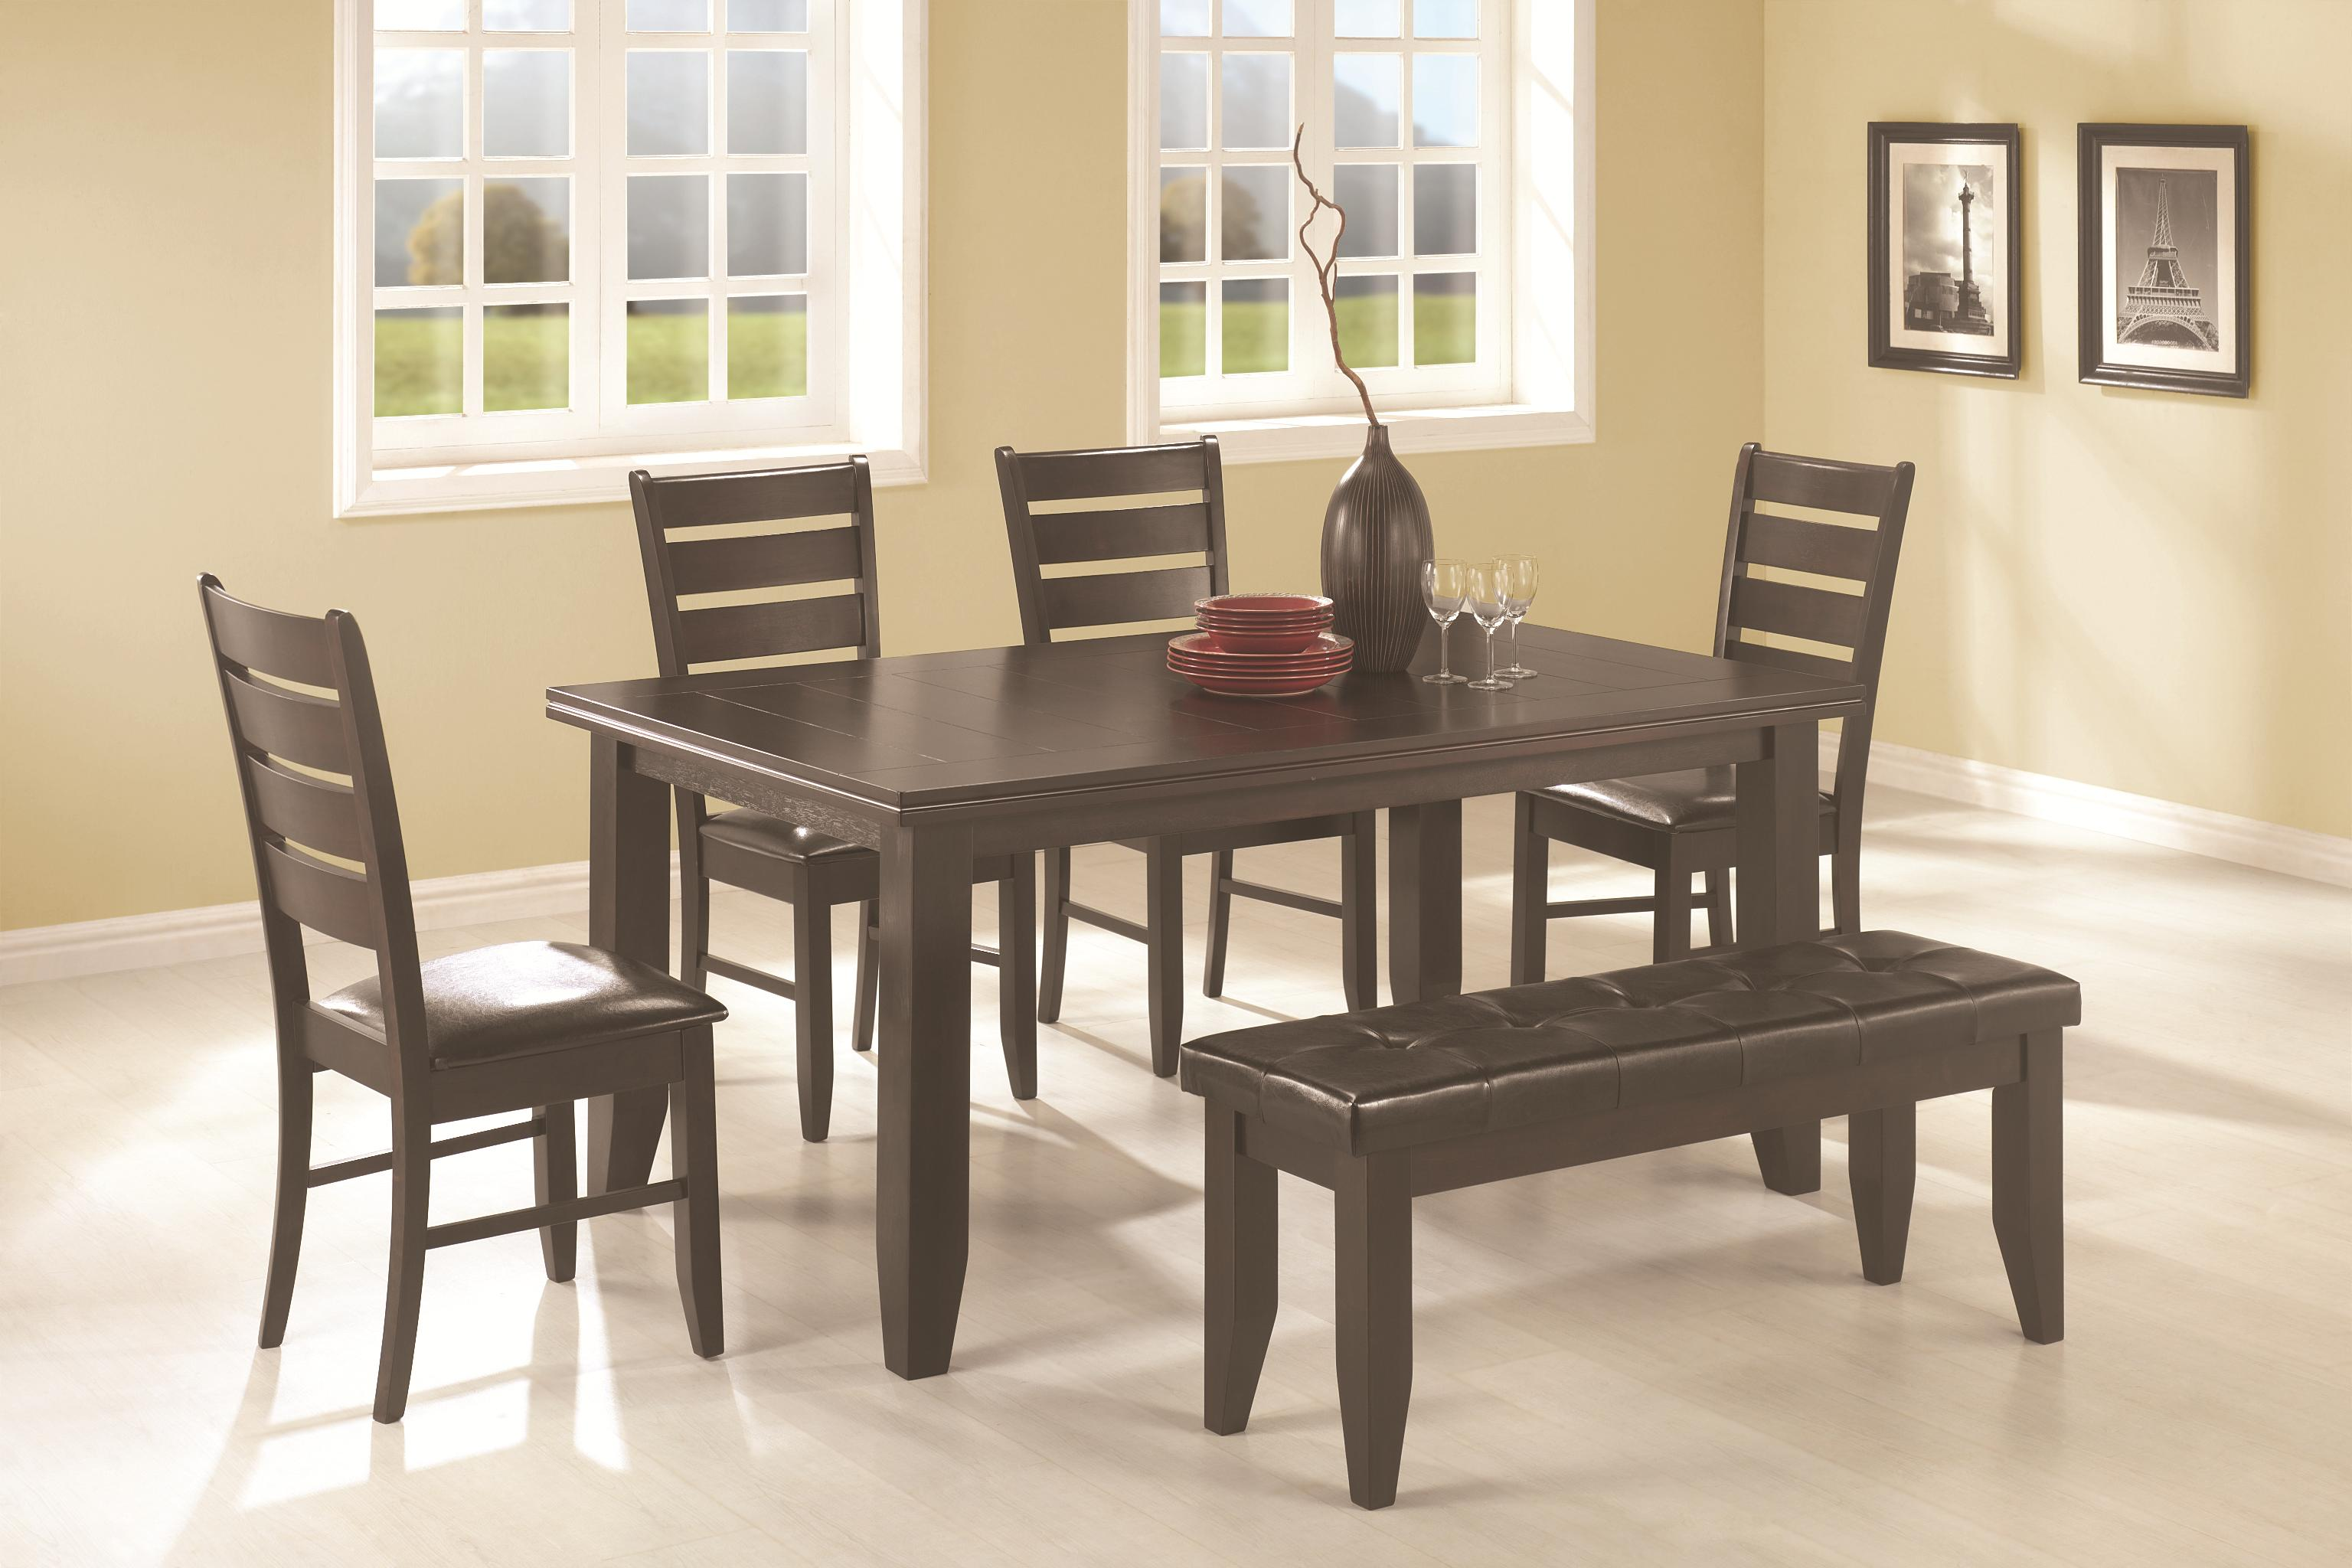 d216ca4b2e4a09 Coaster Page 6 Piece Dining Set | Dunk & Bright Furniture | Table ...